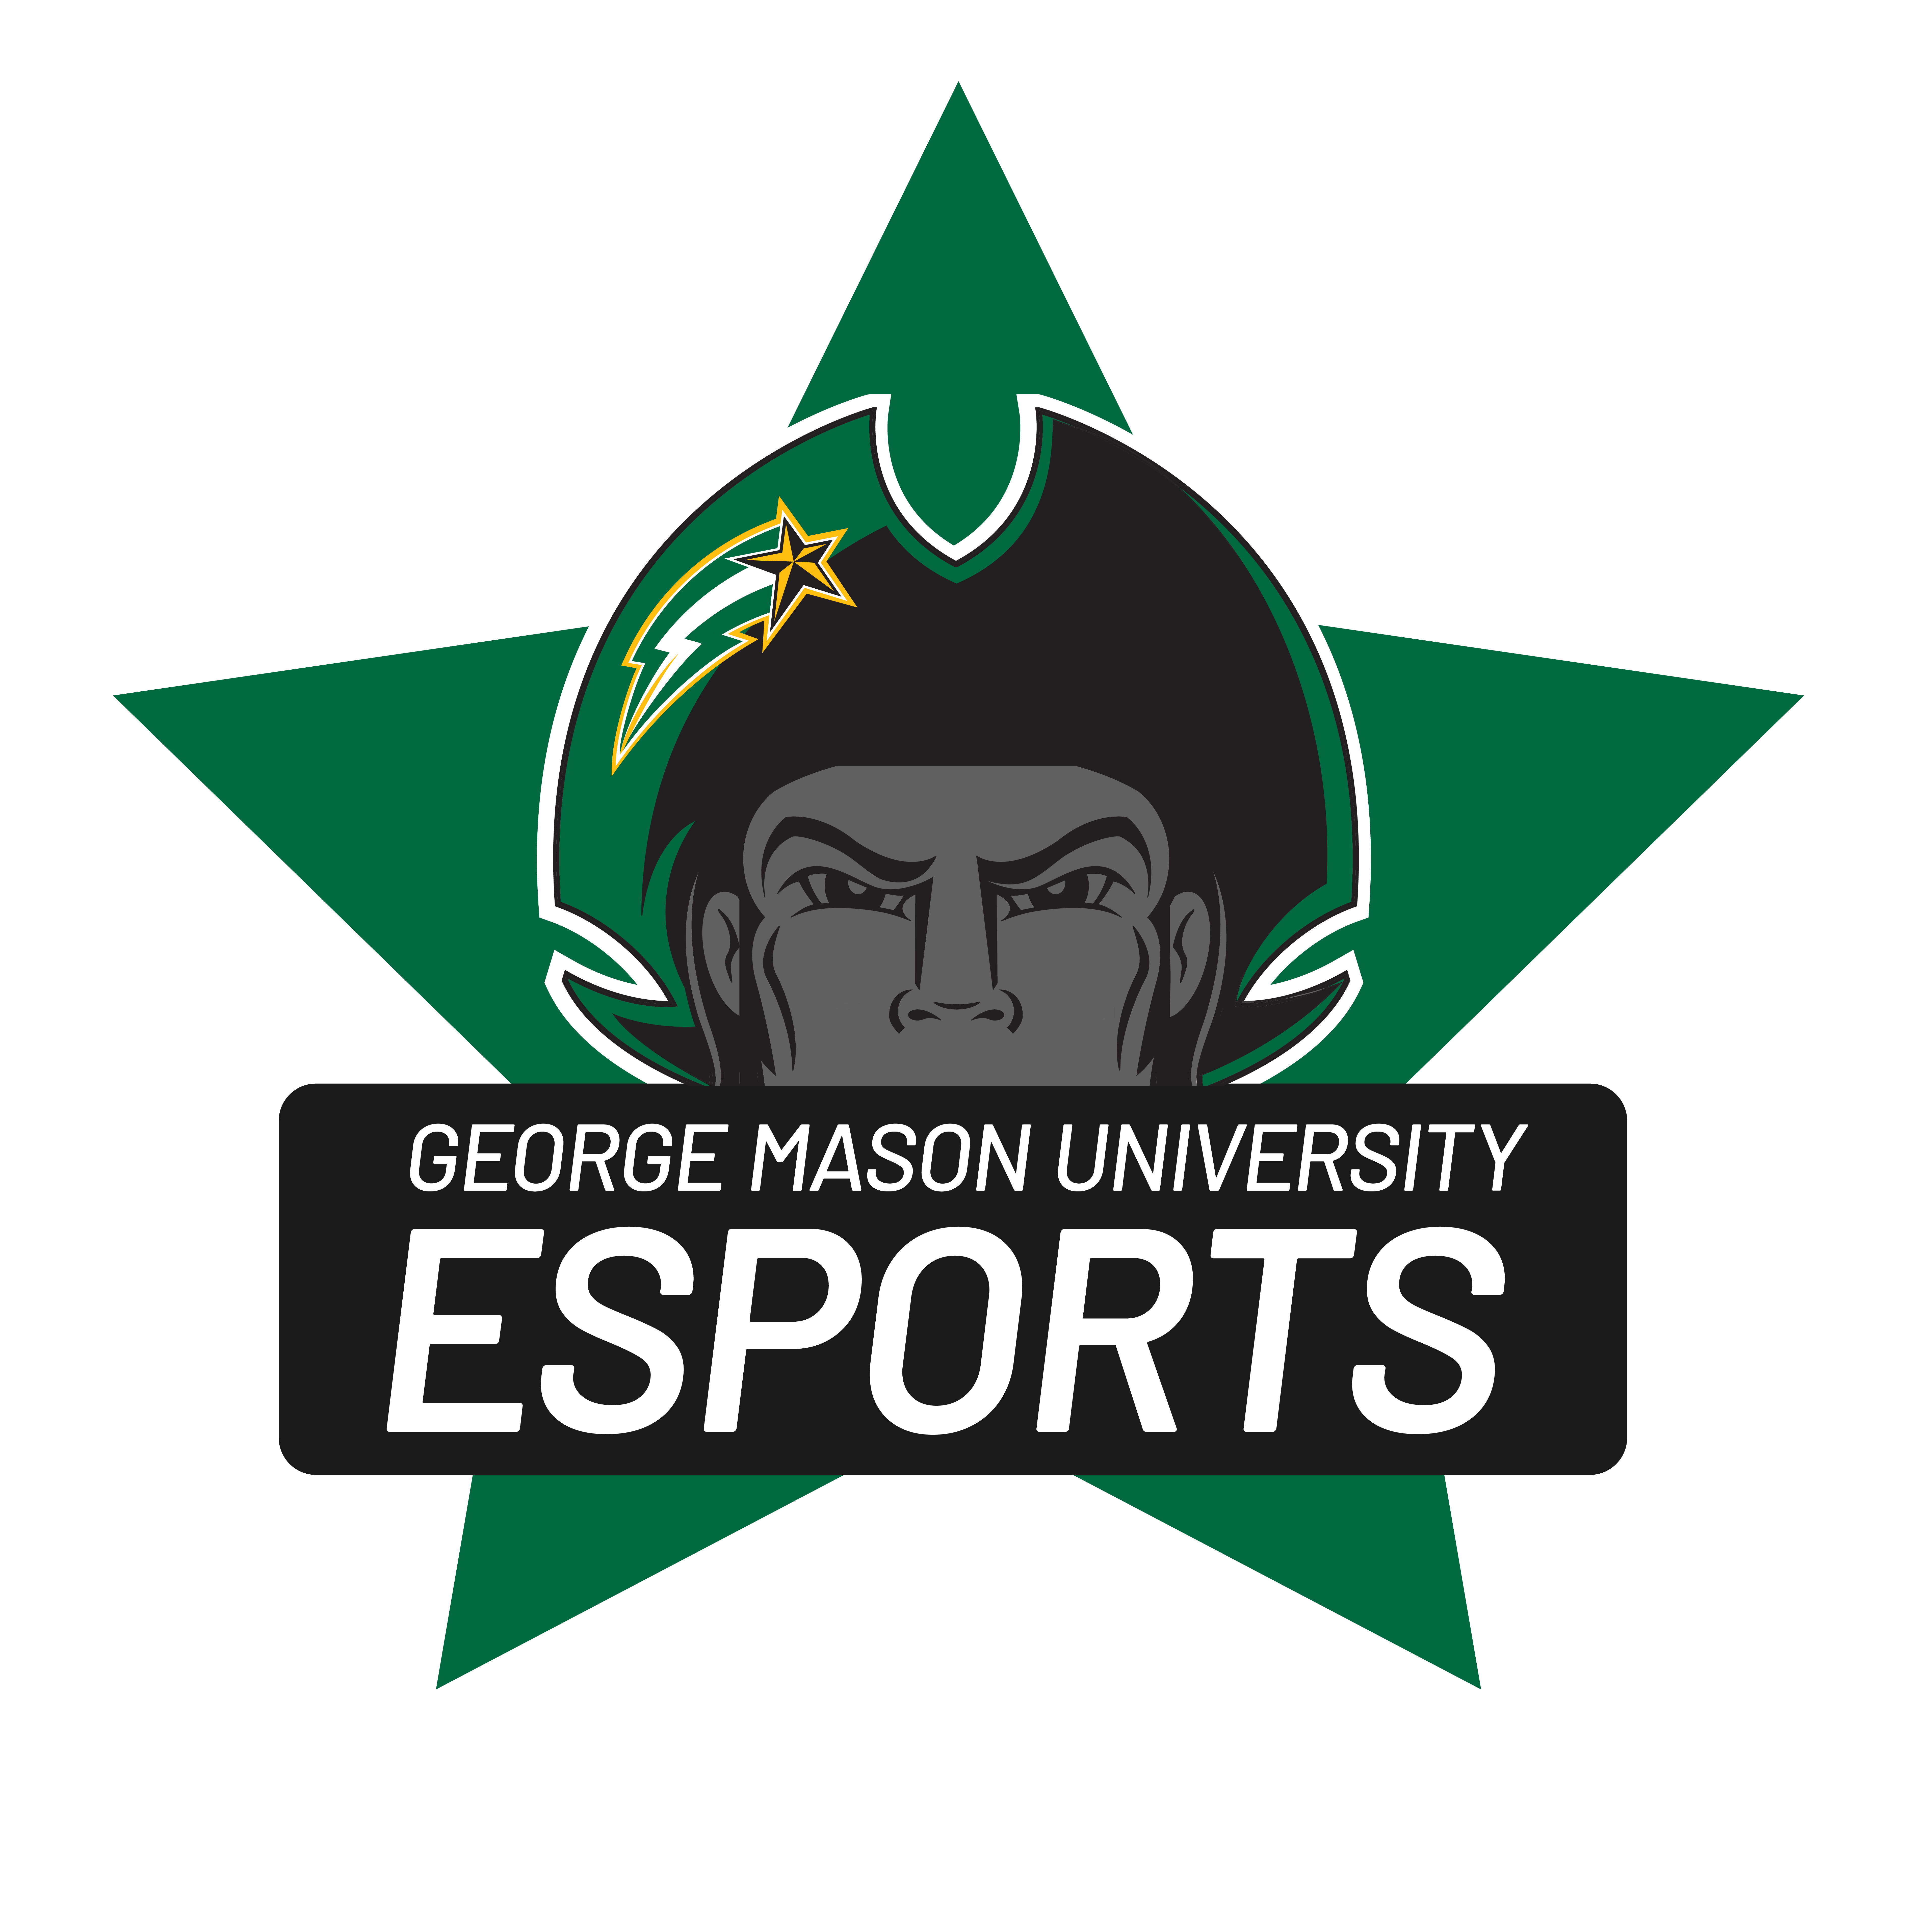 GMU Team C's logo